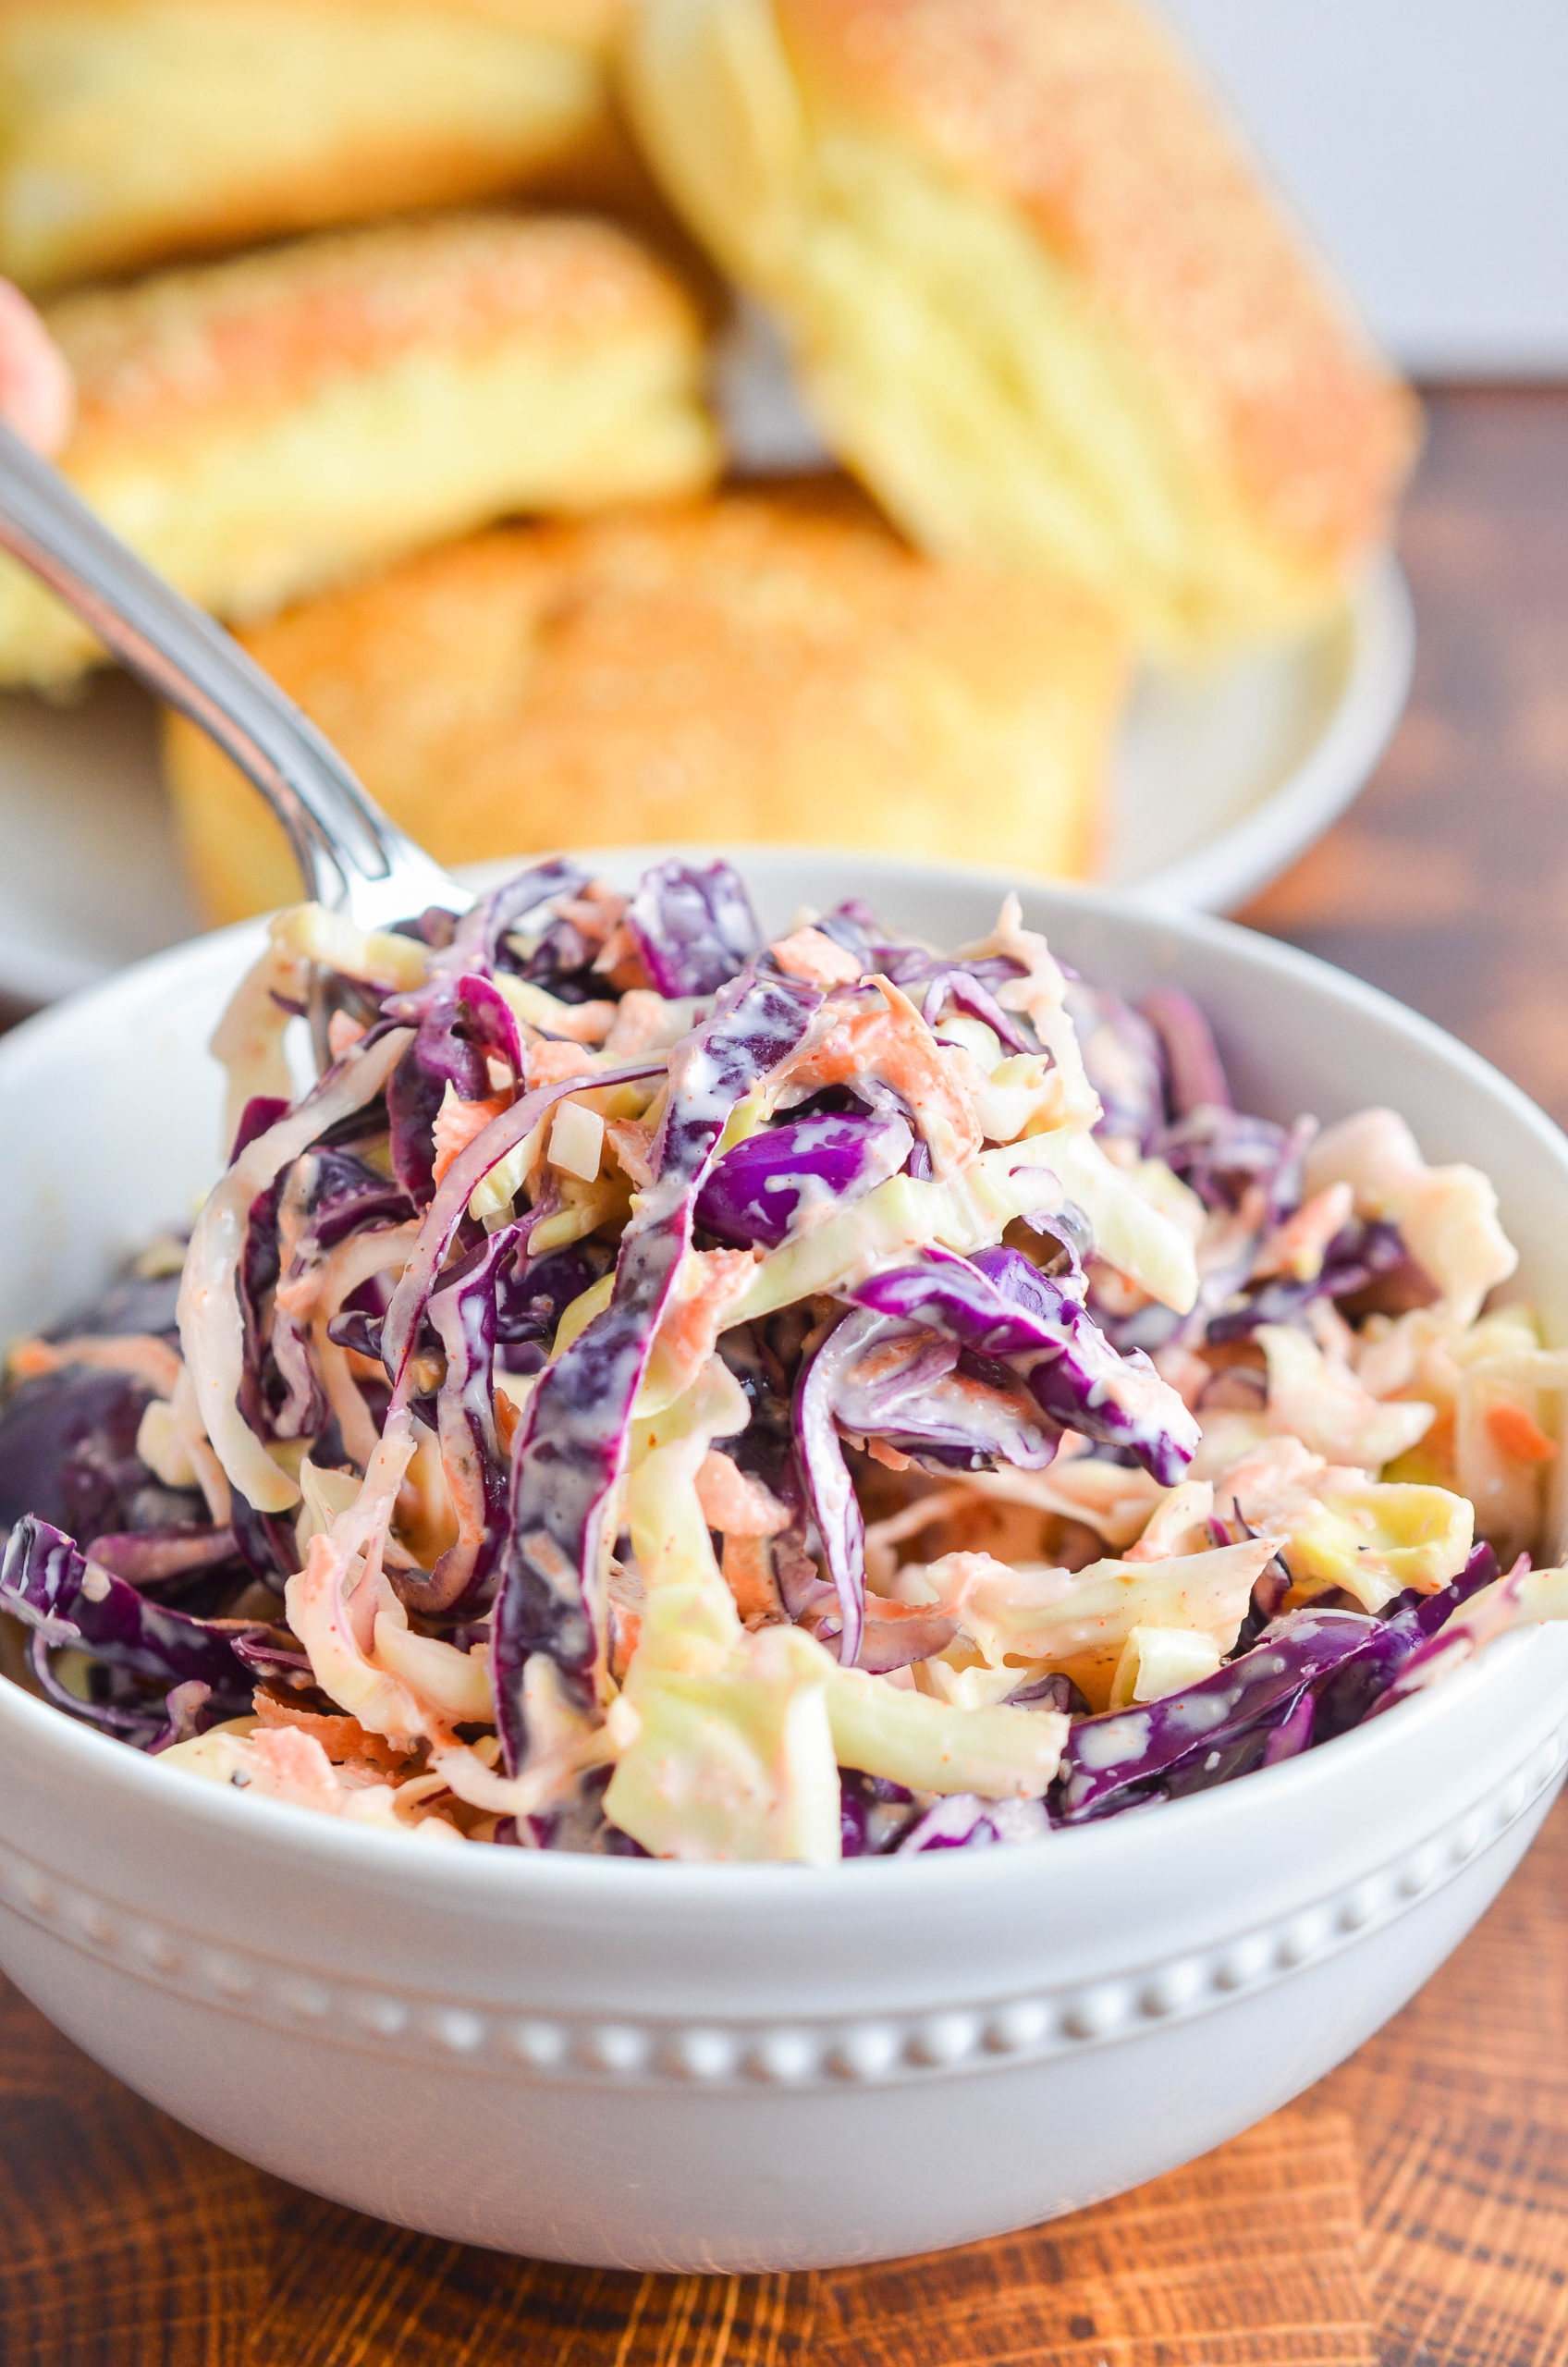 A spoonful of coleslaw.